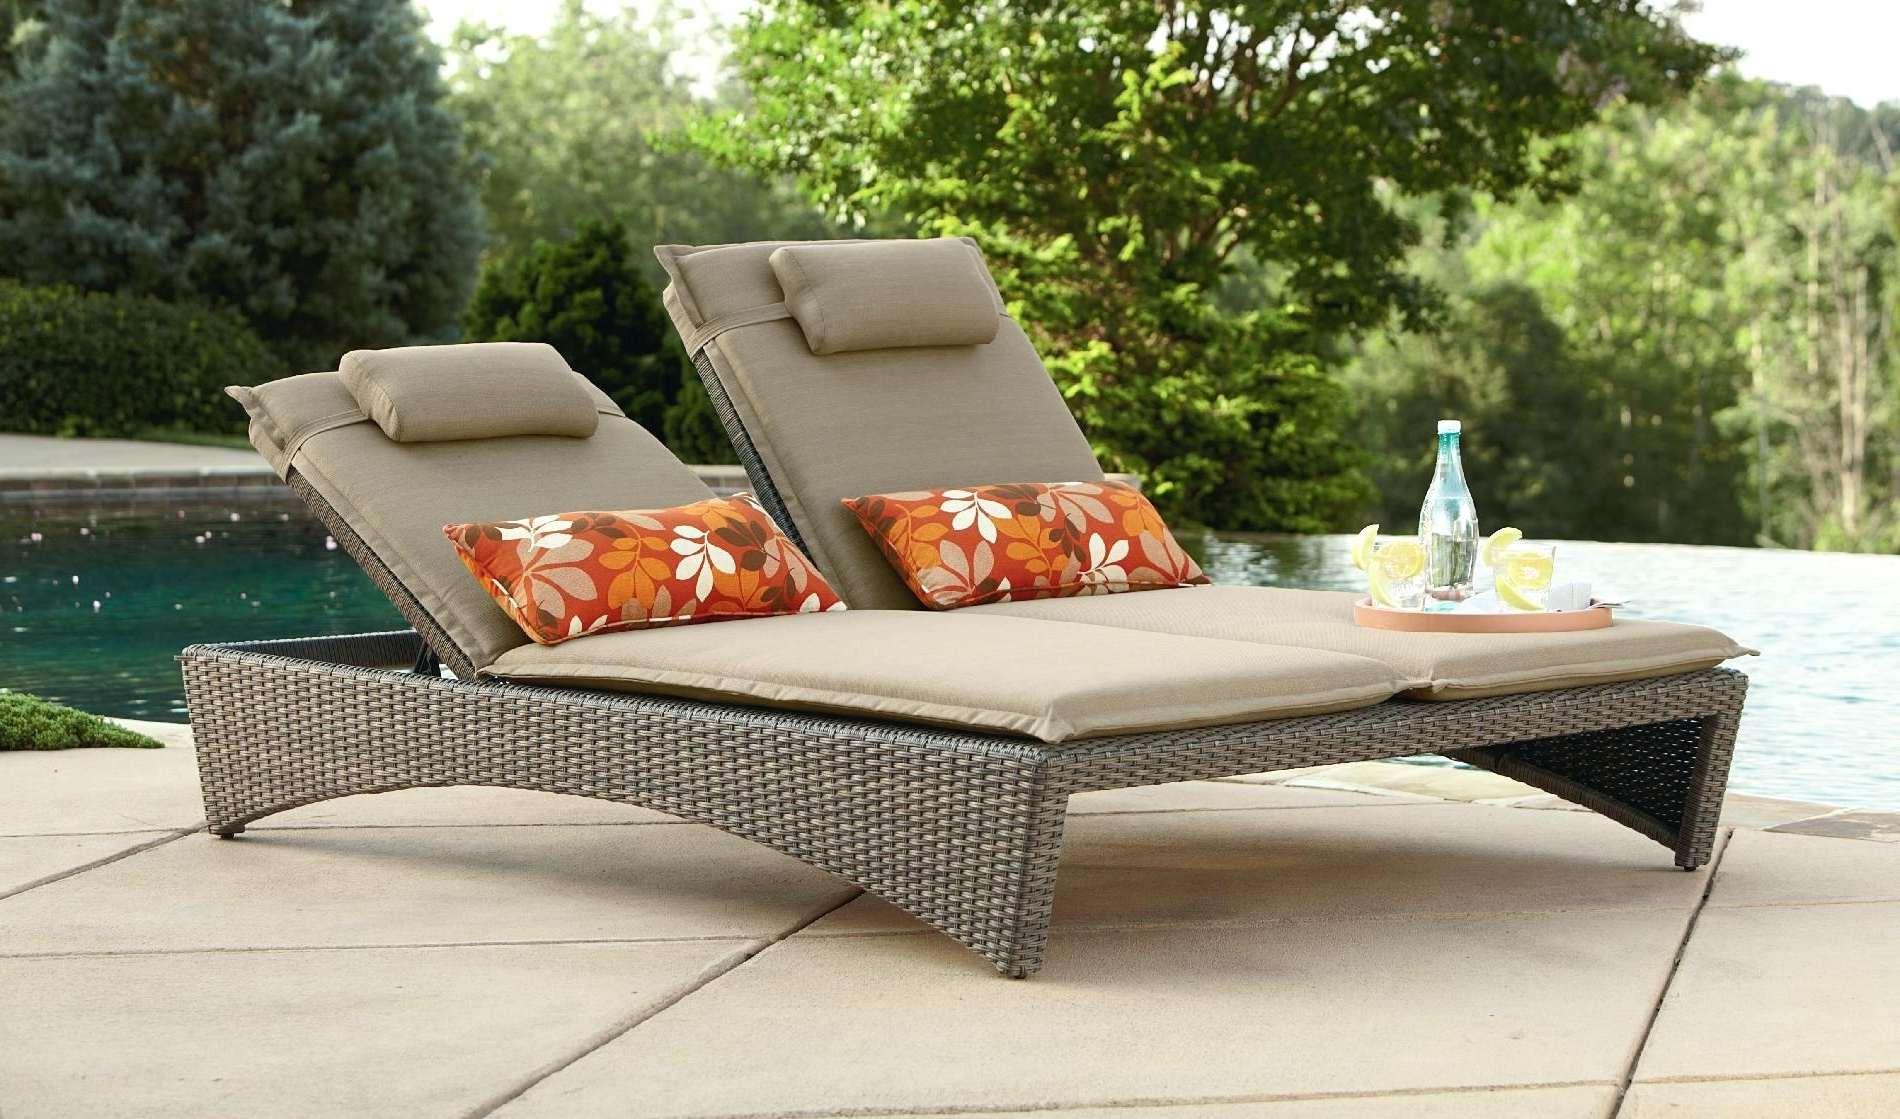 Popular Outdoor Chaise Lounge Chairs Under 100 Awesome Chair For Two For Outdoor Chaise Lounge Chairs Under $ (View 12 of 15)